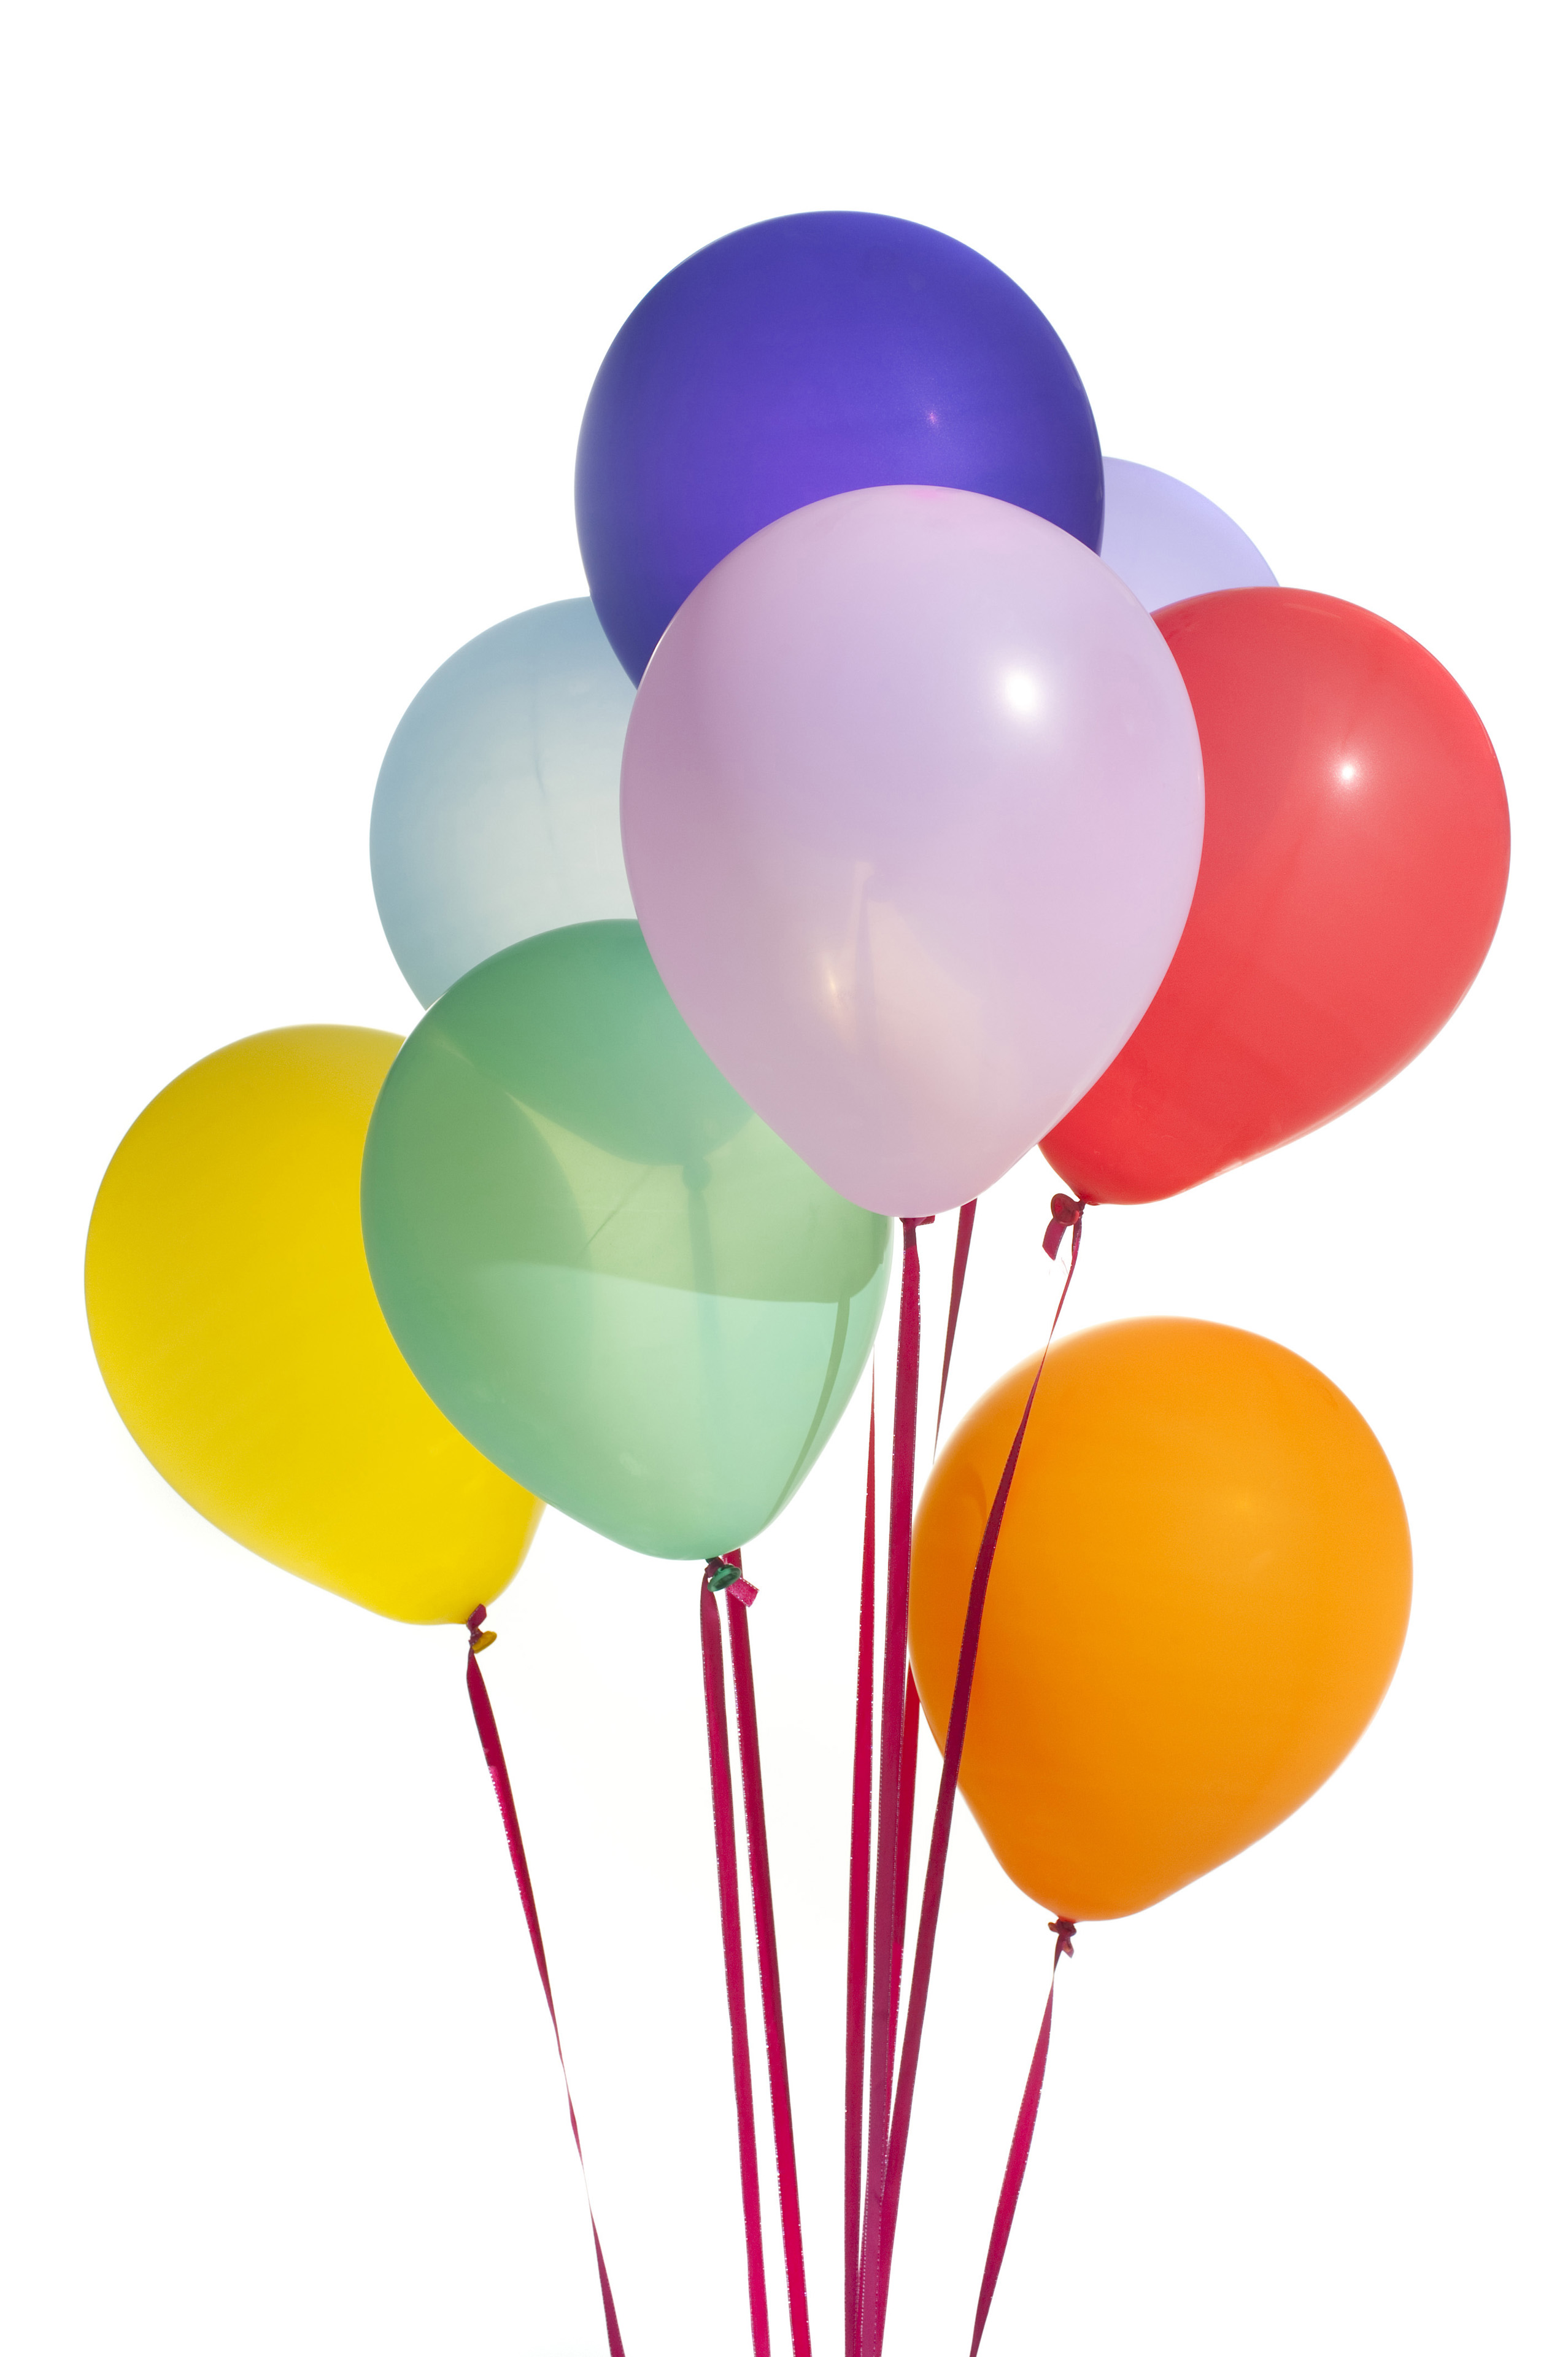 Ballons Party Balloons Images Reverse Search